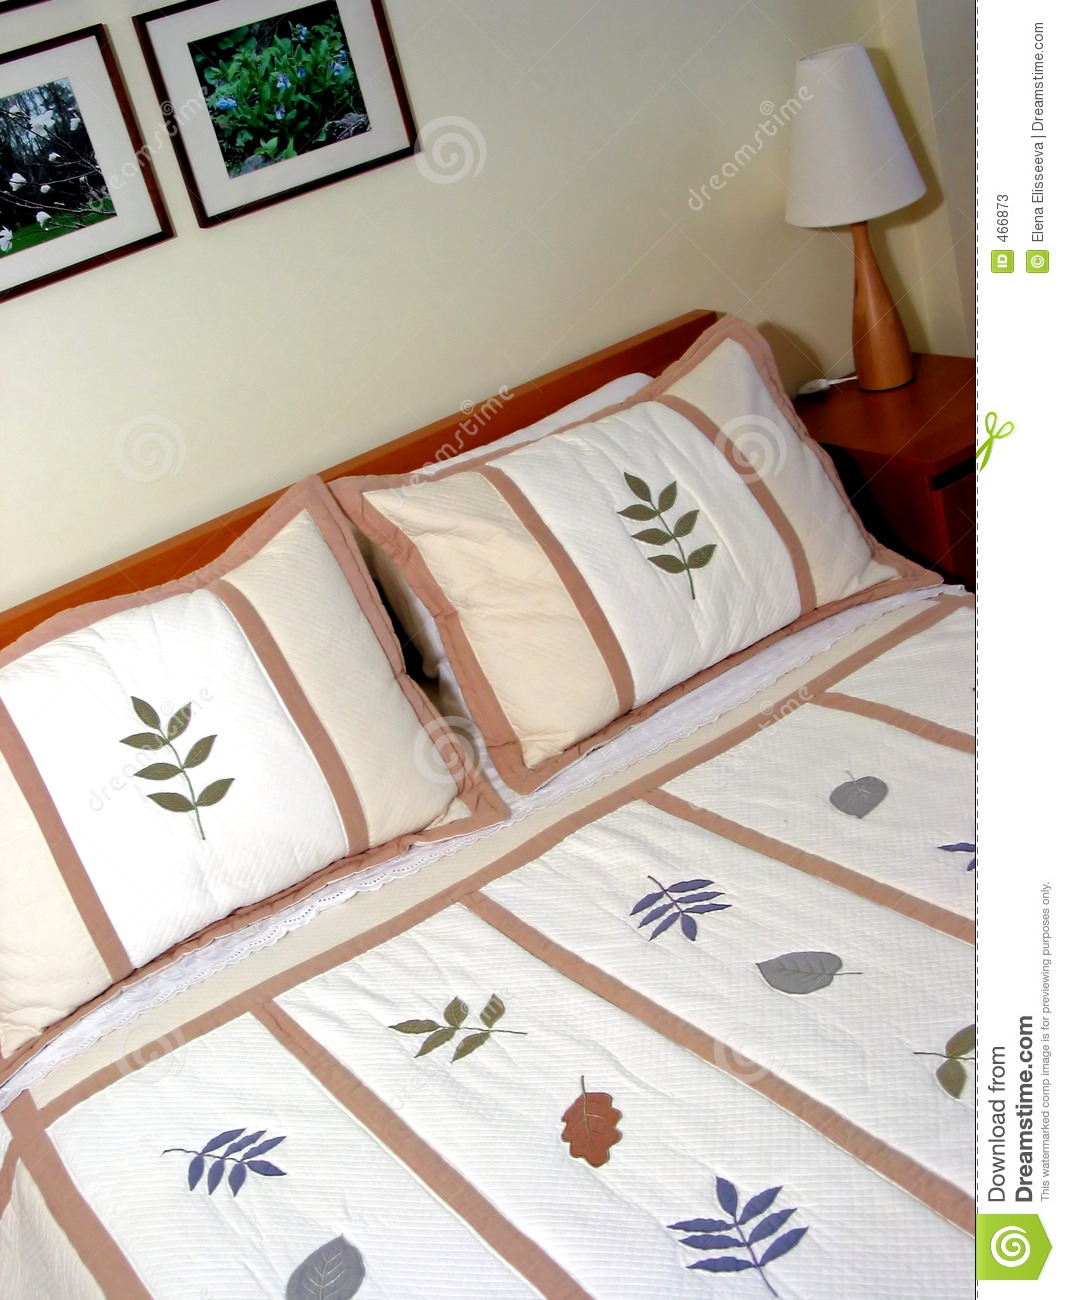 Download Bedroom interior 3 stock image. Image of family, design - 466873